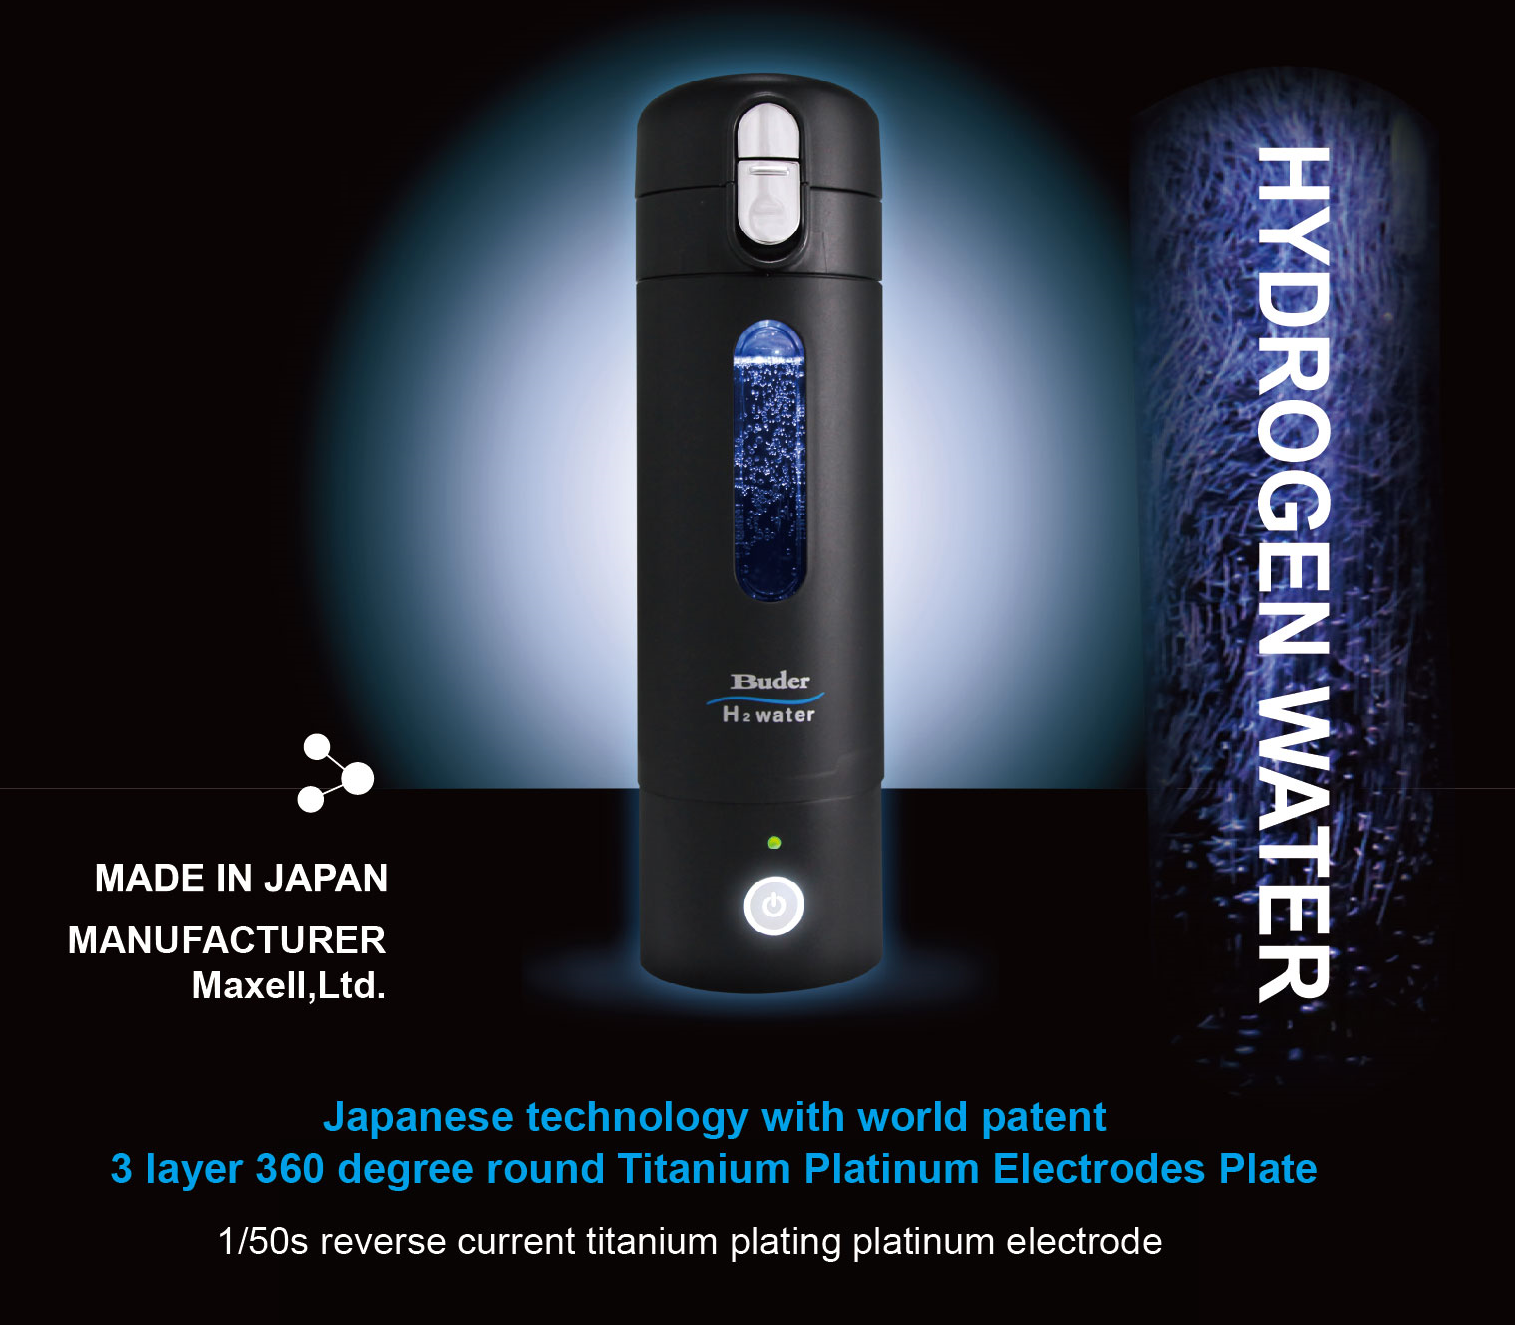 Portable Botol Air Hydrogen Titanium Maxell made in Jepang